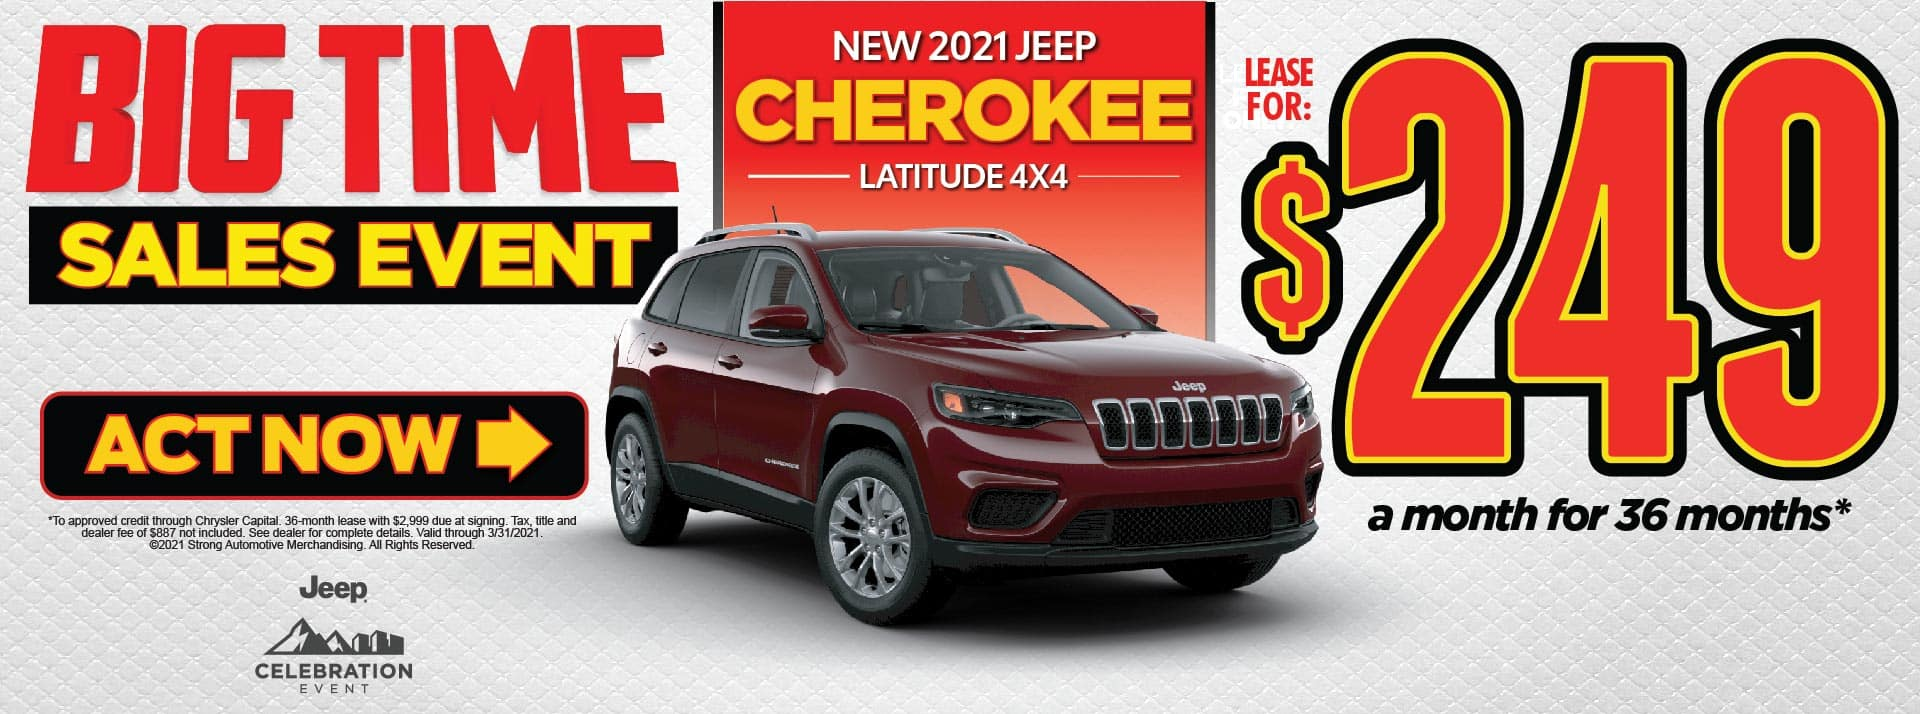 NEW 2021 JEEP CHEROKEE LATITUDE LEASE FOR $249/MO* ACT NOW